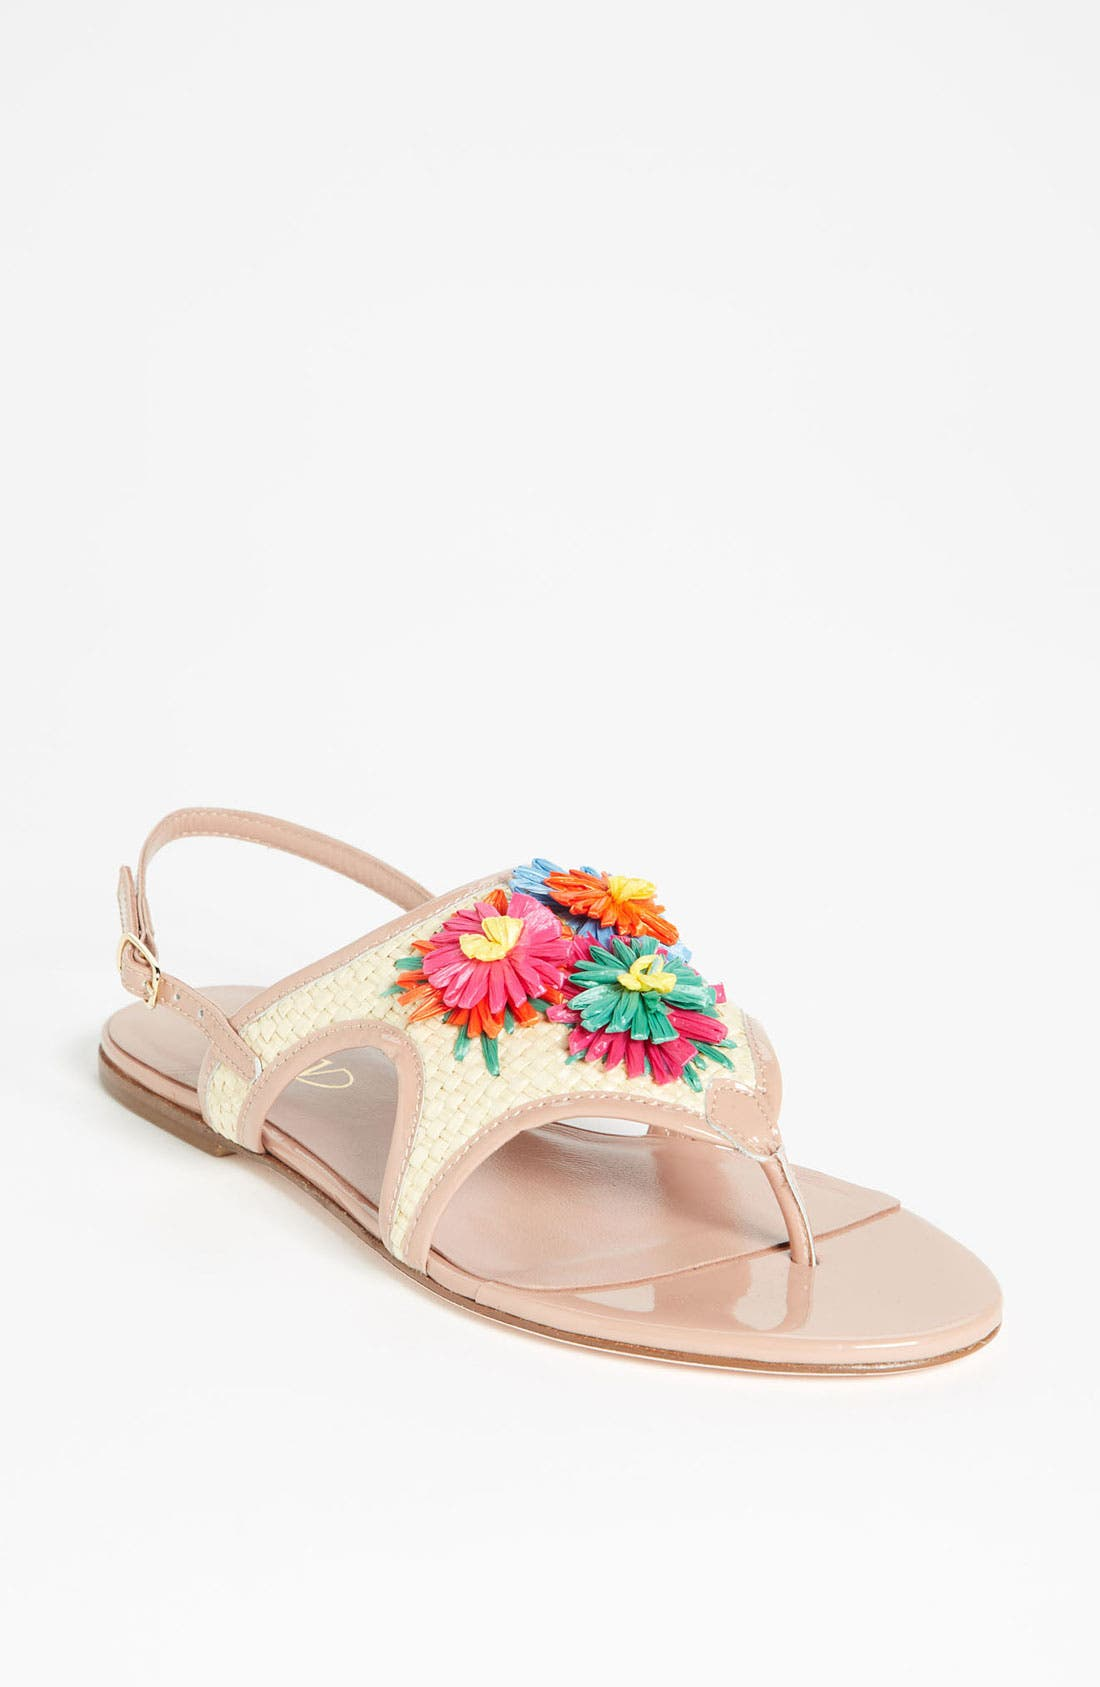 Alternate Image 1 Selected - RED Valentino Embroidered Sandal